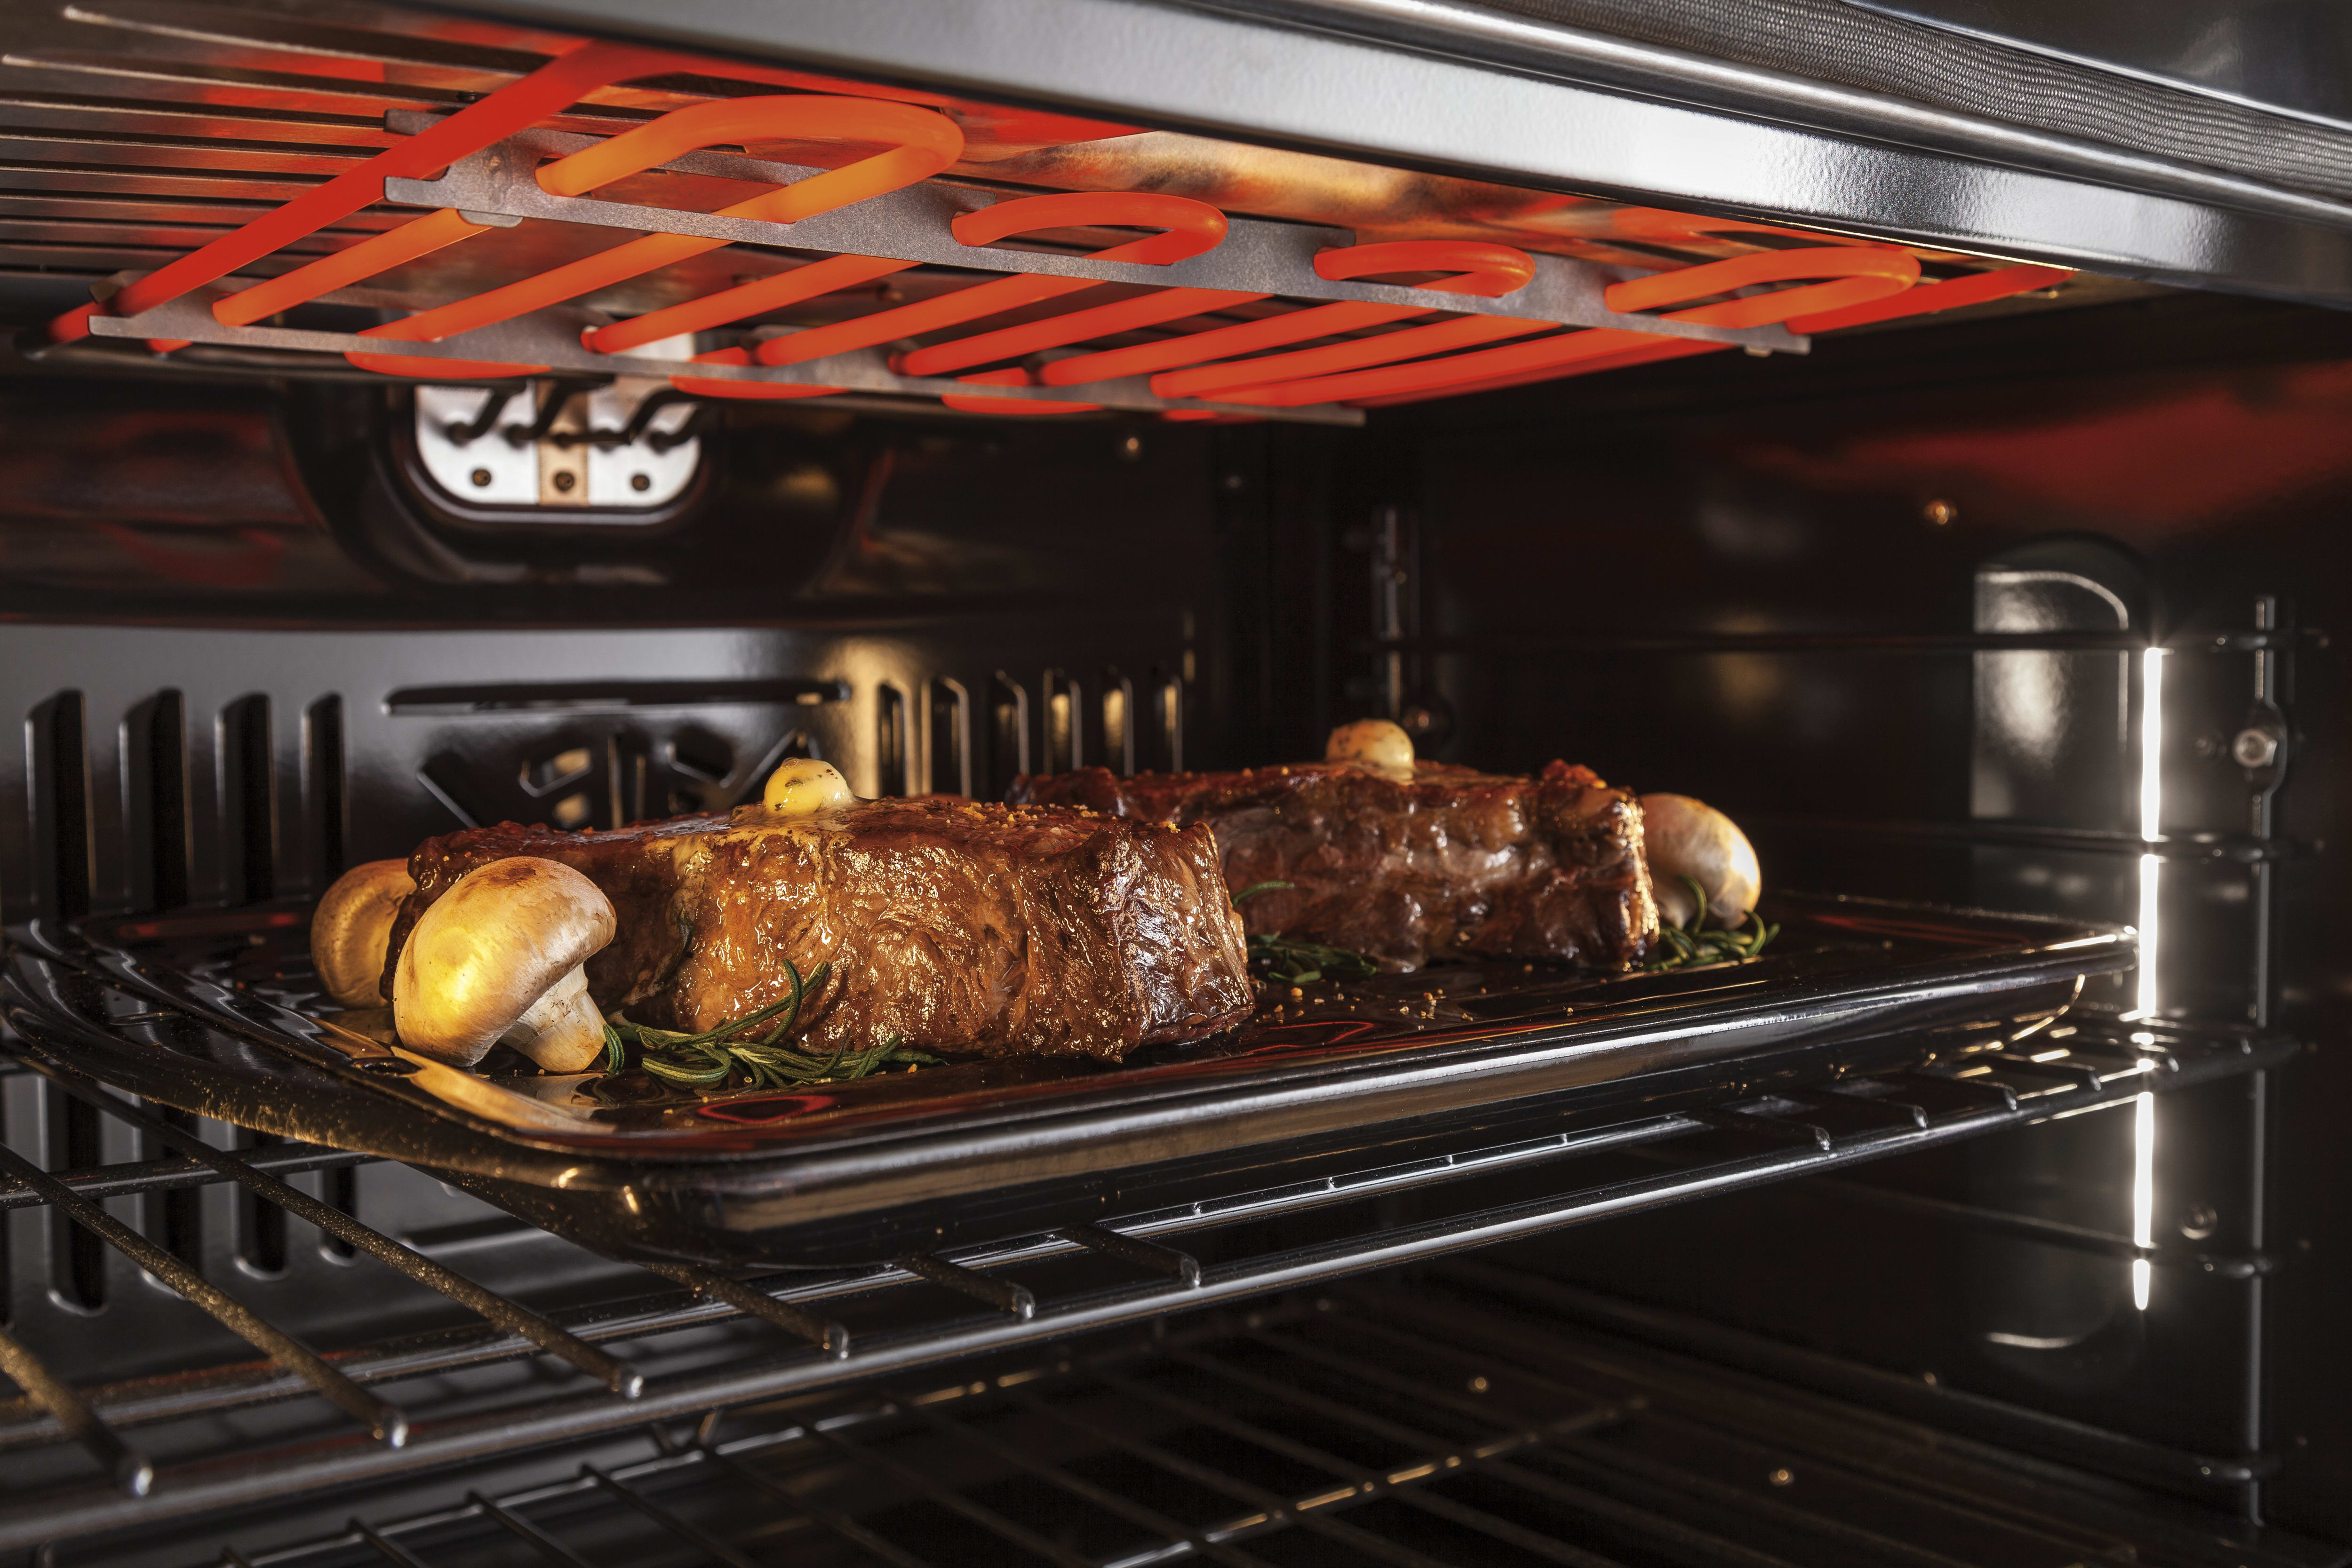 The ten-pass broiling element in action.